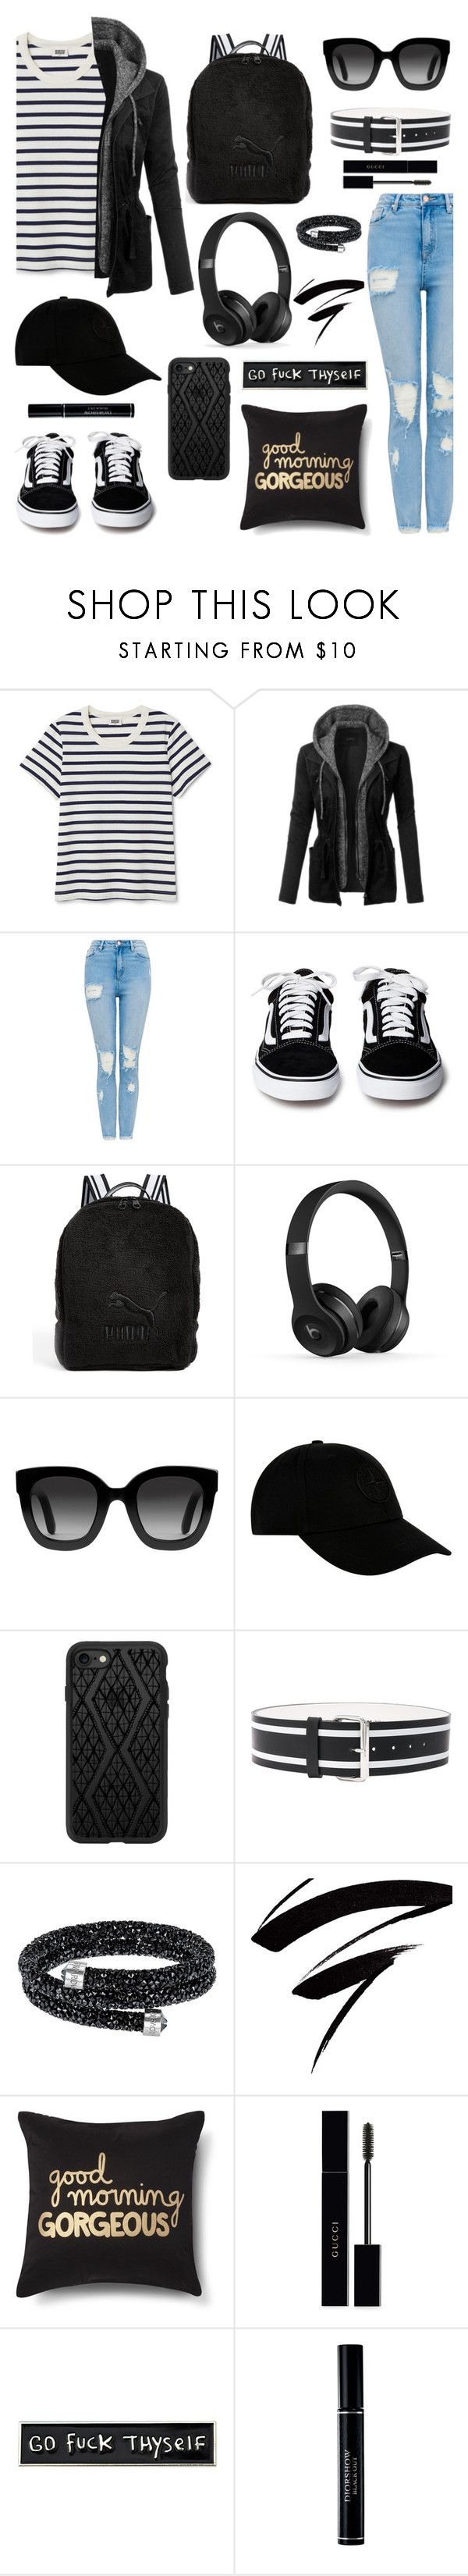 """Dress up a T-shirt"" by mvarun74 ❤ liked on Polyvore featuring LE3NO, Puma, Gucci, STONE ISLAND, Casetify, Monse, RIPNDIP, Christian Dior and MyFaveTshirt"